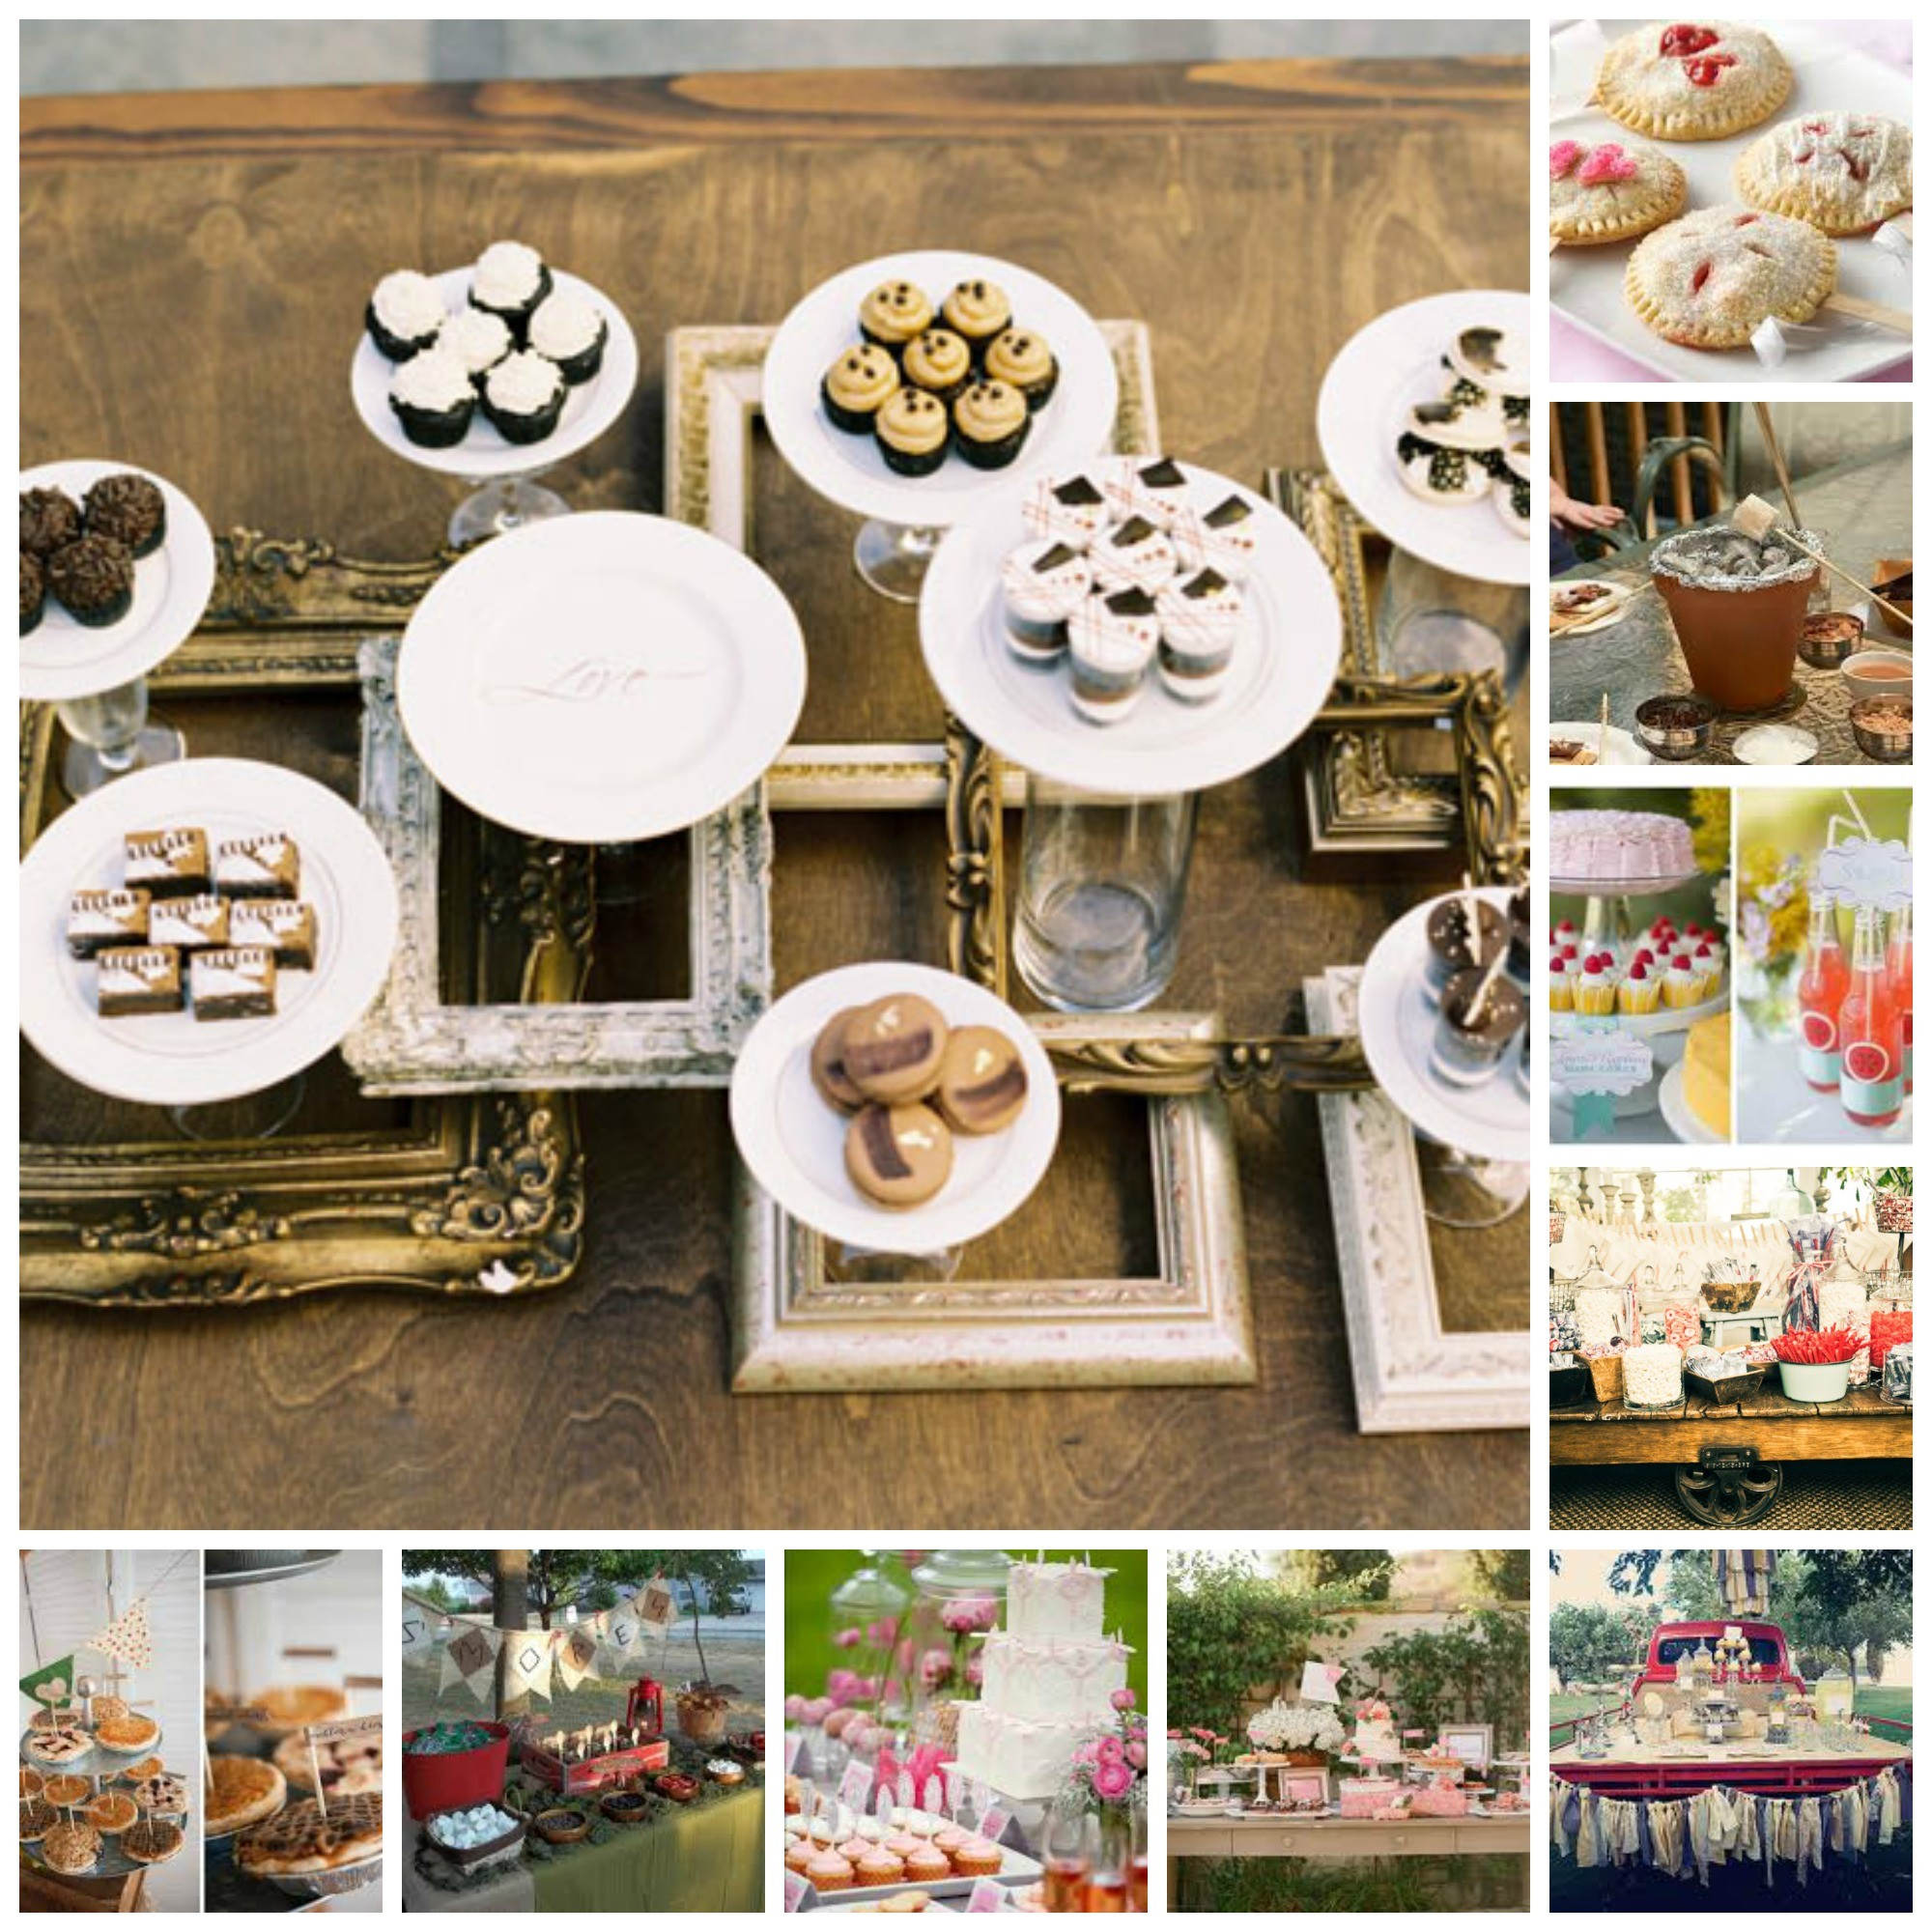 Wedding Desserts Bar Ideas: Wedding Dessert Bar Ideas